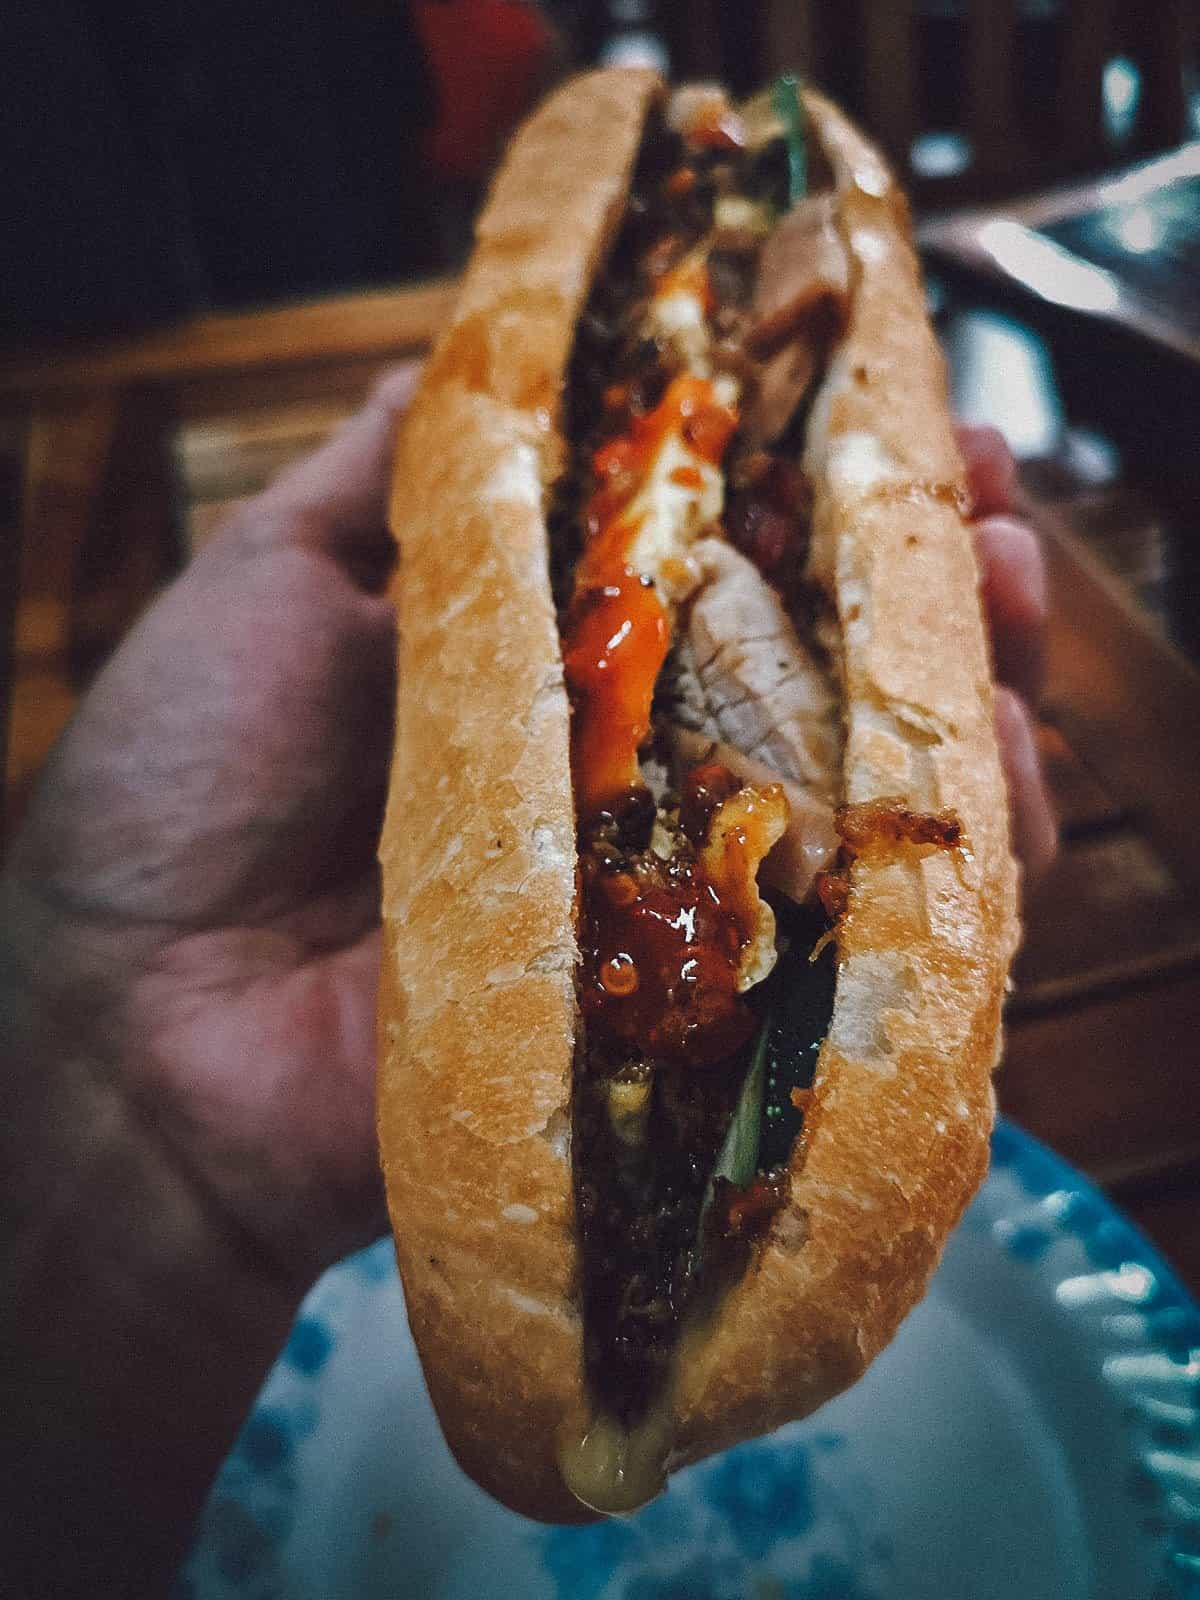 Banh Mi at Madam Khanh in Hoi An, Vietnam